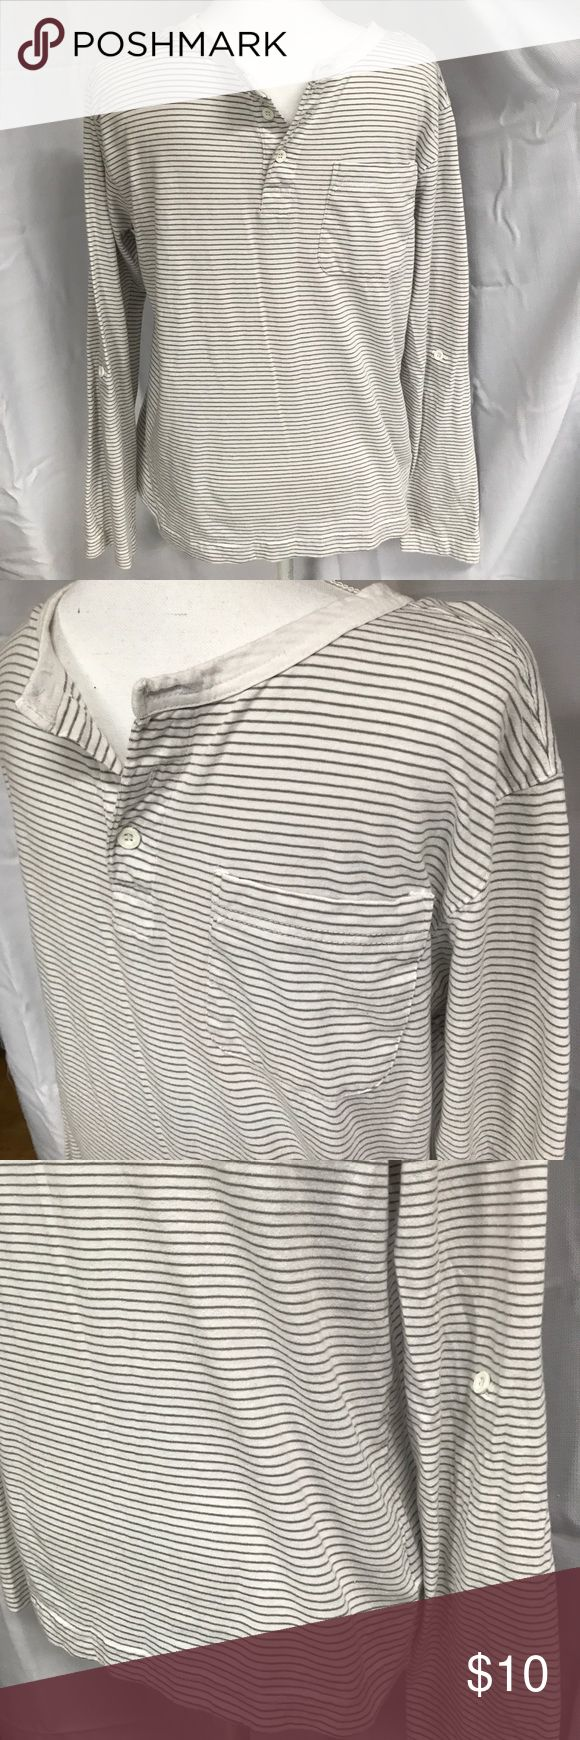 Men's gray and white striped henley tee A striped long sleeve henley tee. Made of 60% cotton and 40% polyester. Price is negotiable. Counter Intelligence Shirts Tees - Long Sleeve